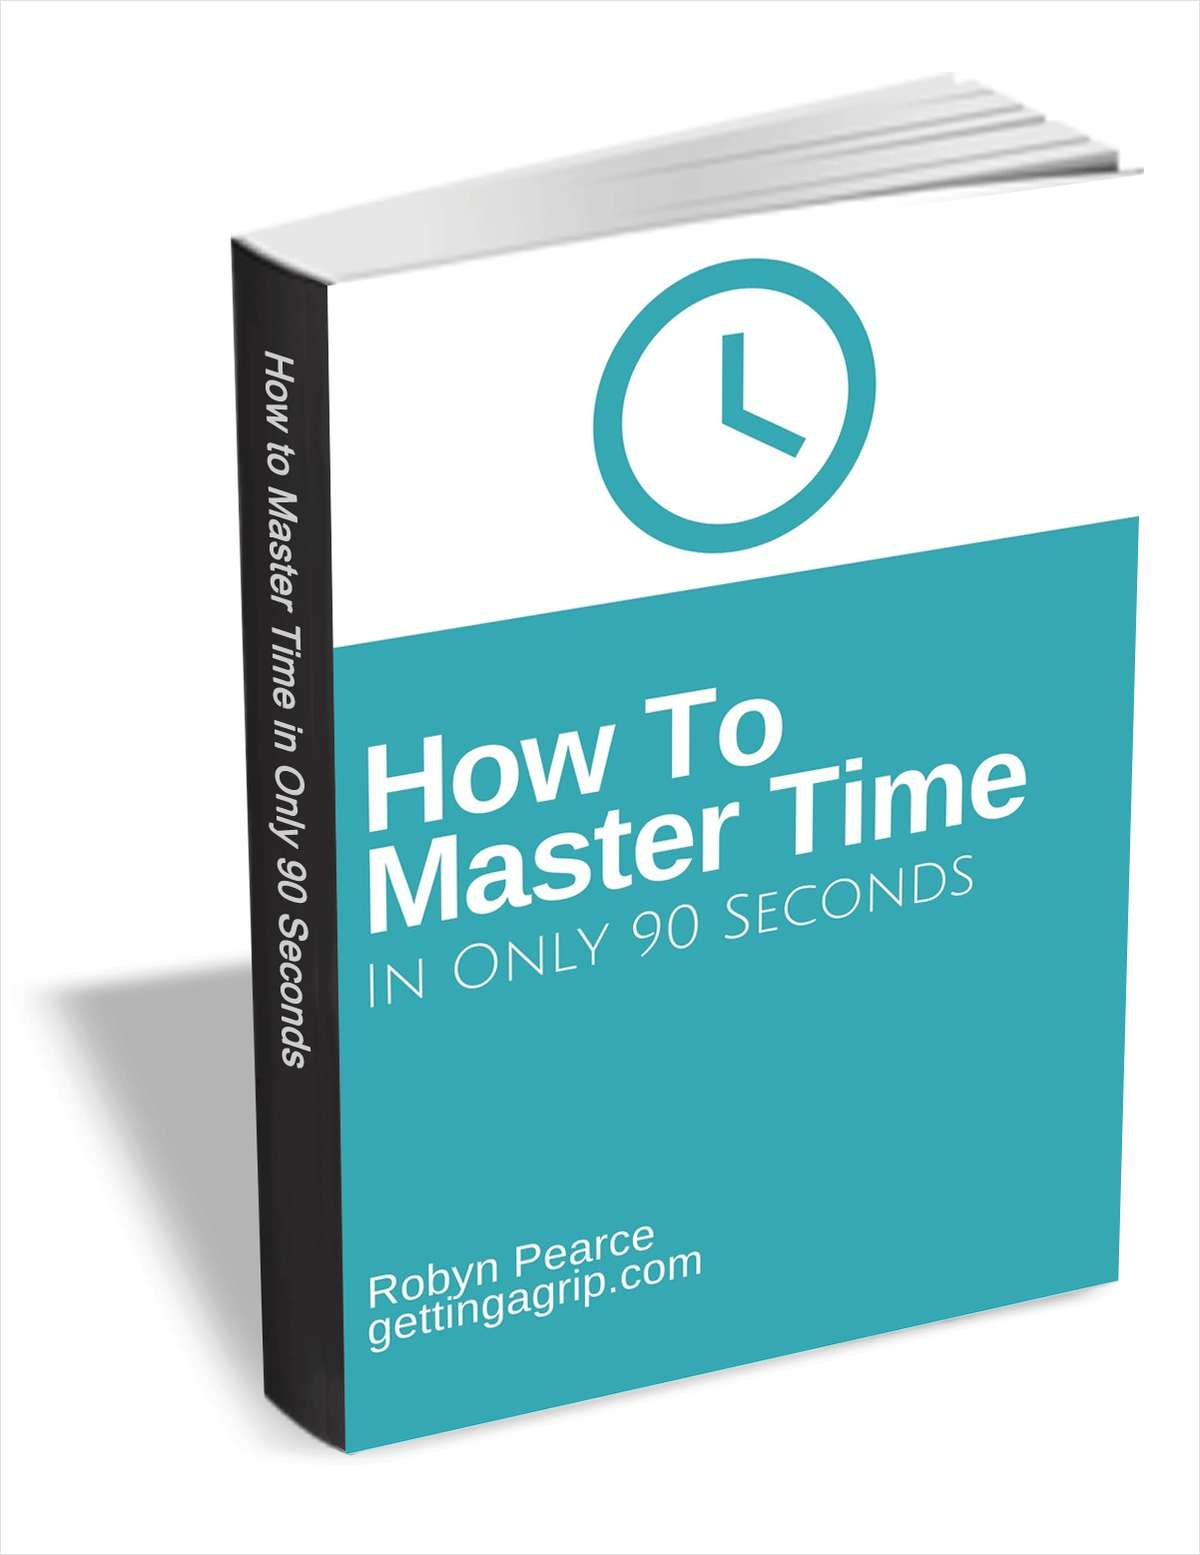 How To Master Time in Only 90 Seconds